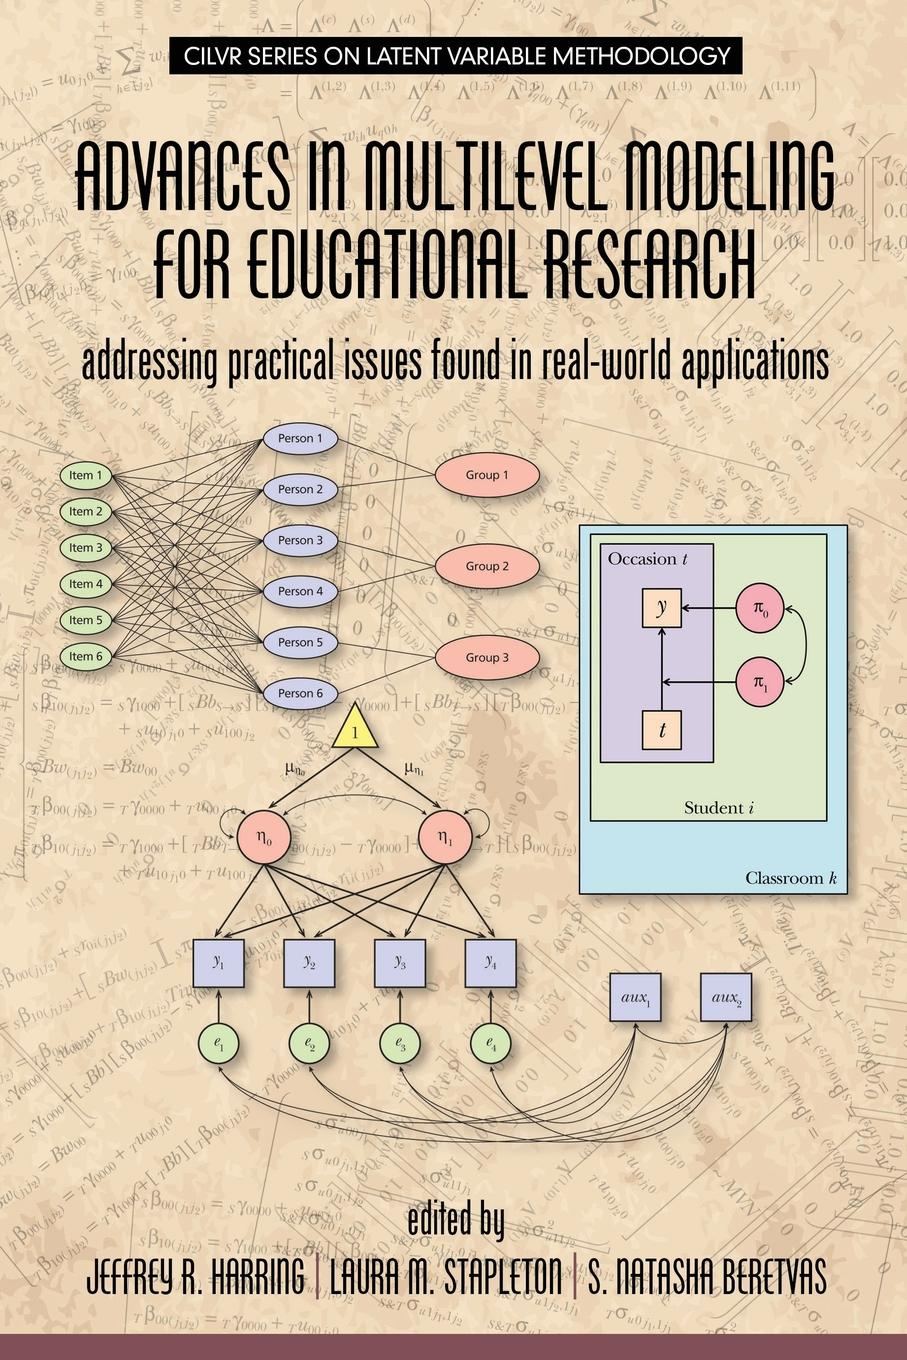 Advances in Multilevel Modeling for Educational Research. Addressing Practical Issues Found in Real-World Applications